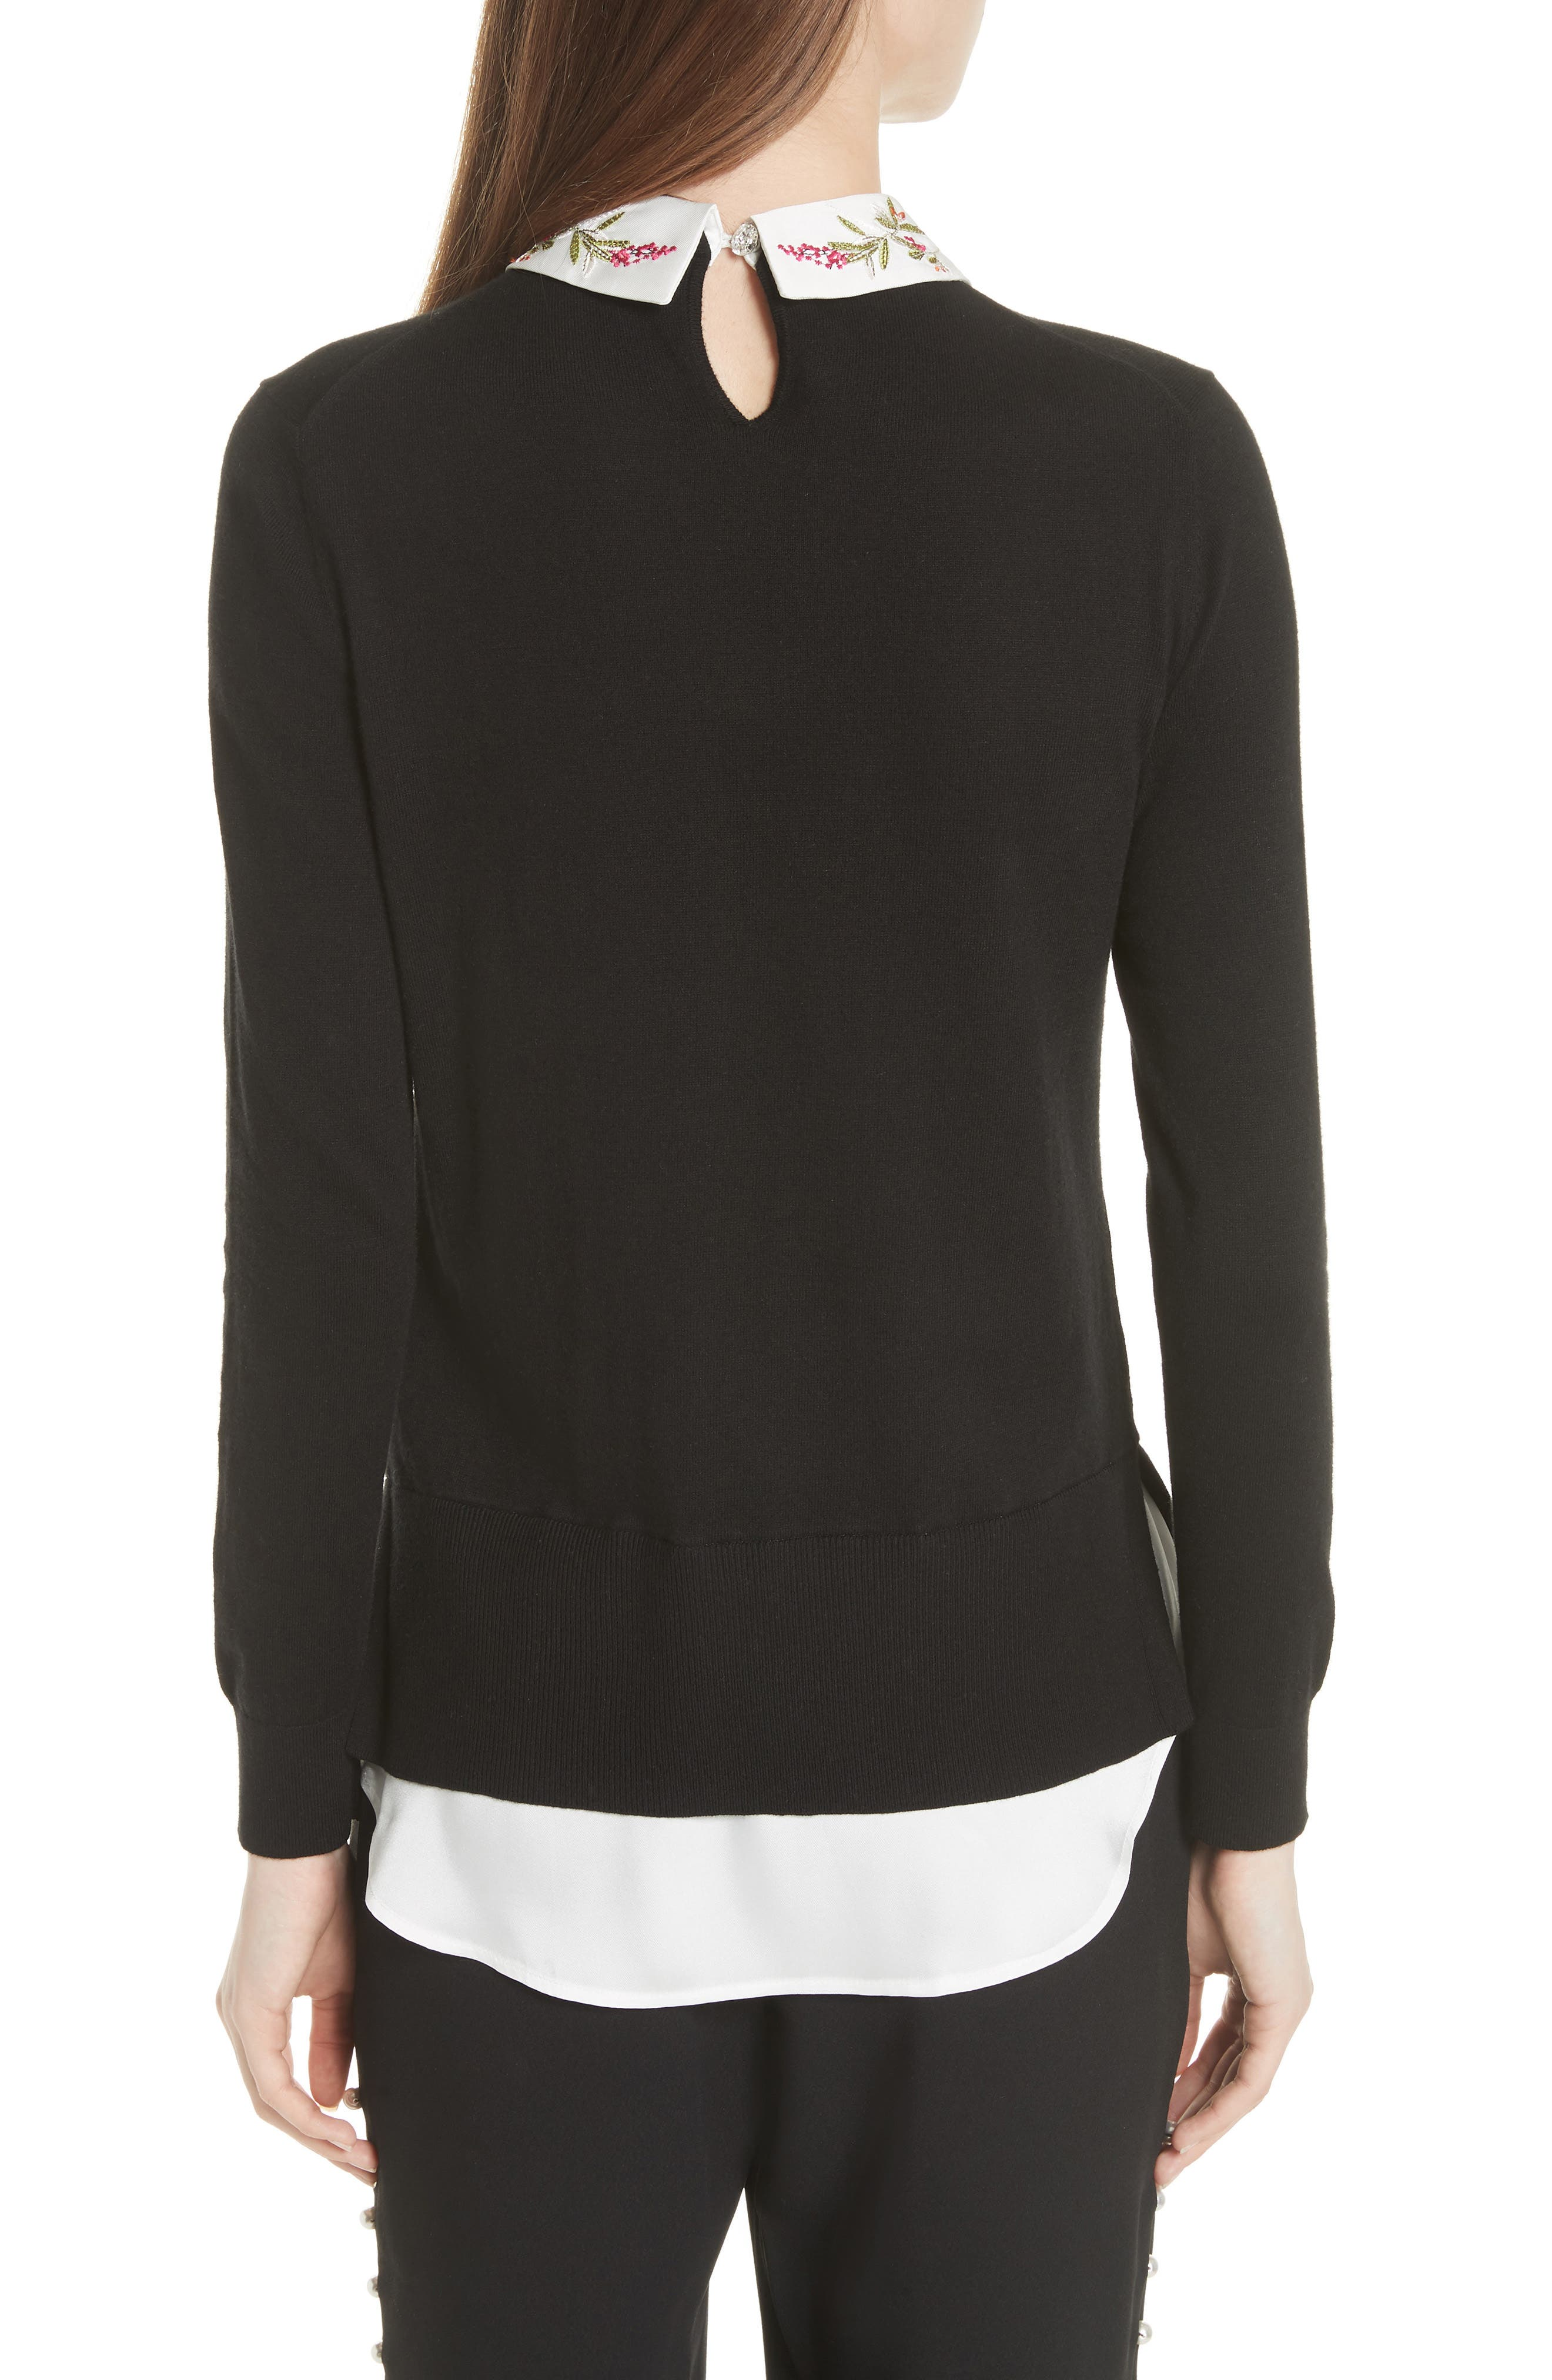 Highgrove Layered Look Sweater,                             Alternate thumbnail 2, color,